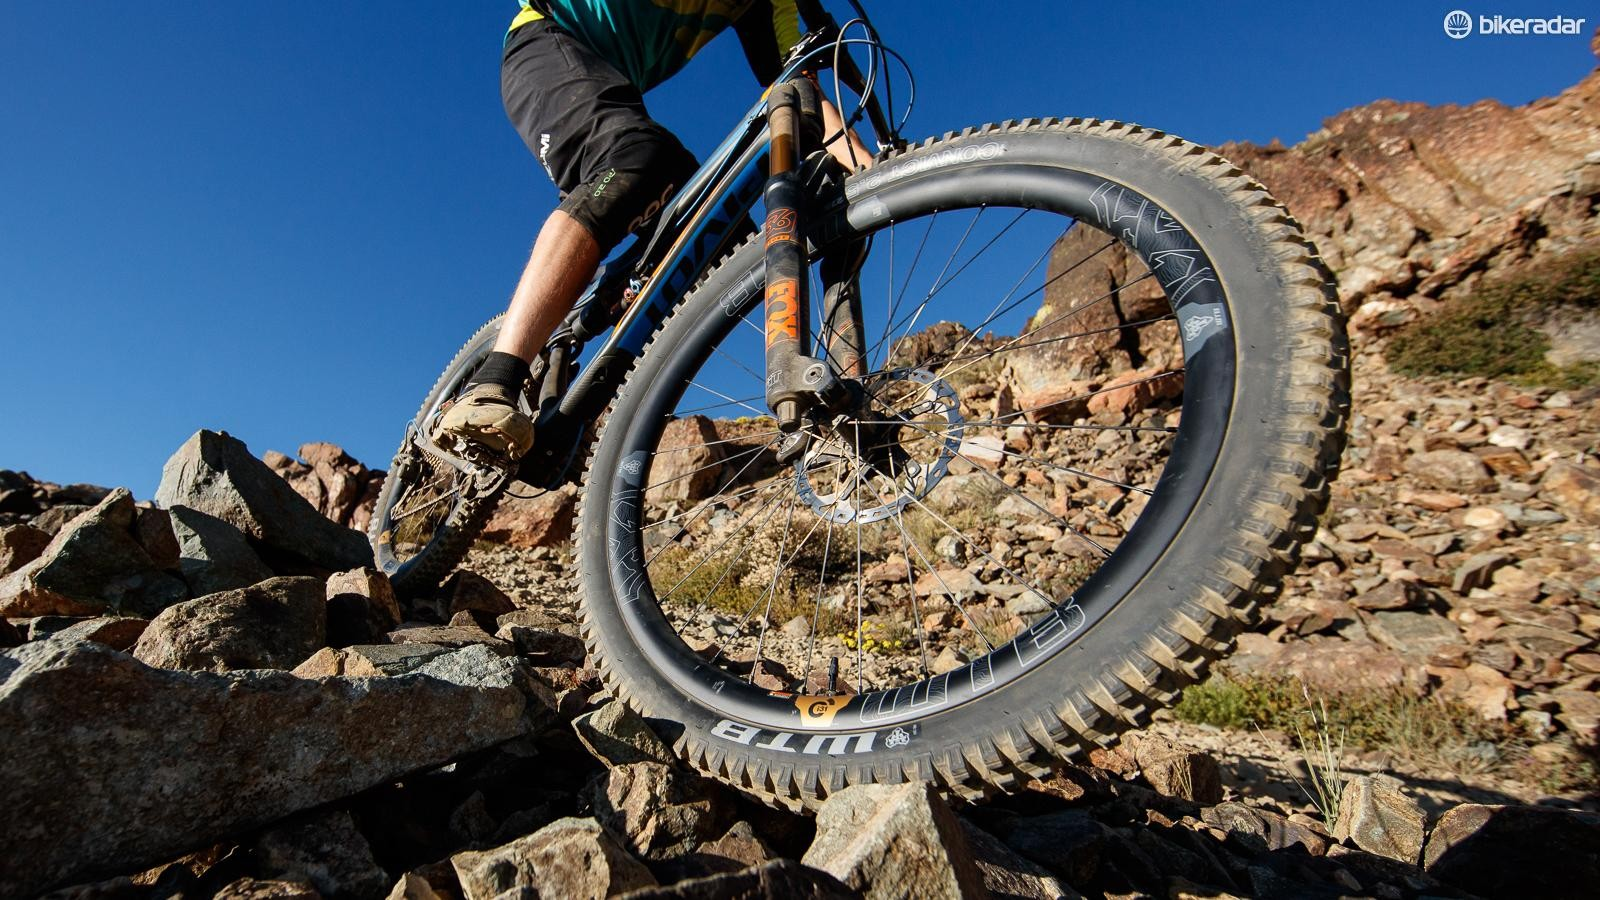 WTB's new Ci31 rim is suitable for trail riding or enduro racing